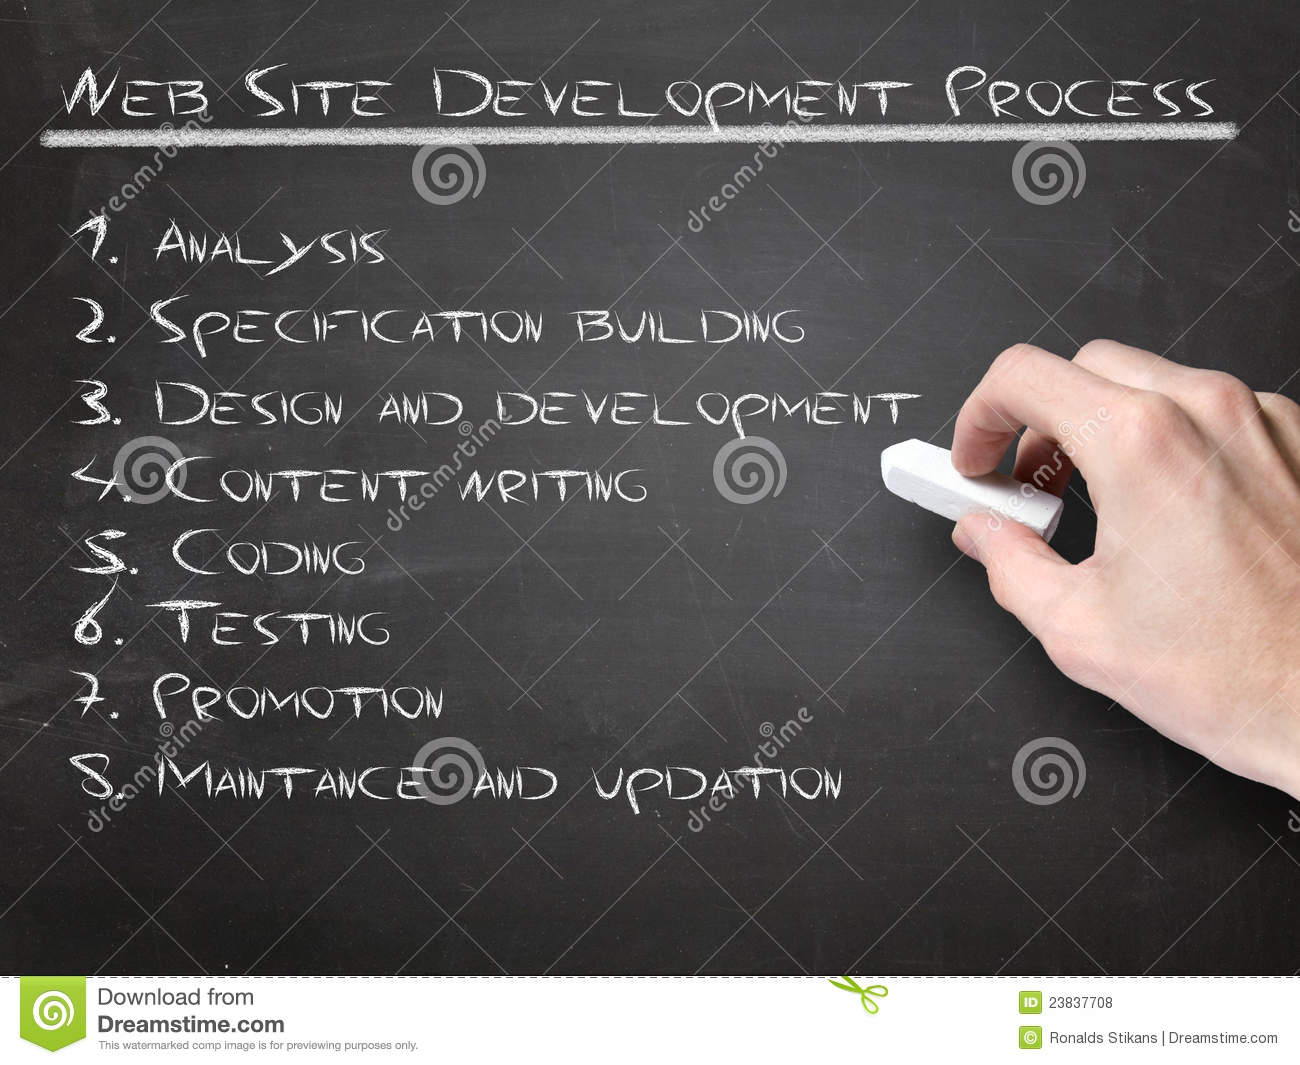 Free website development images